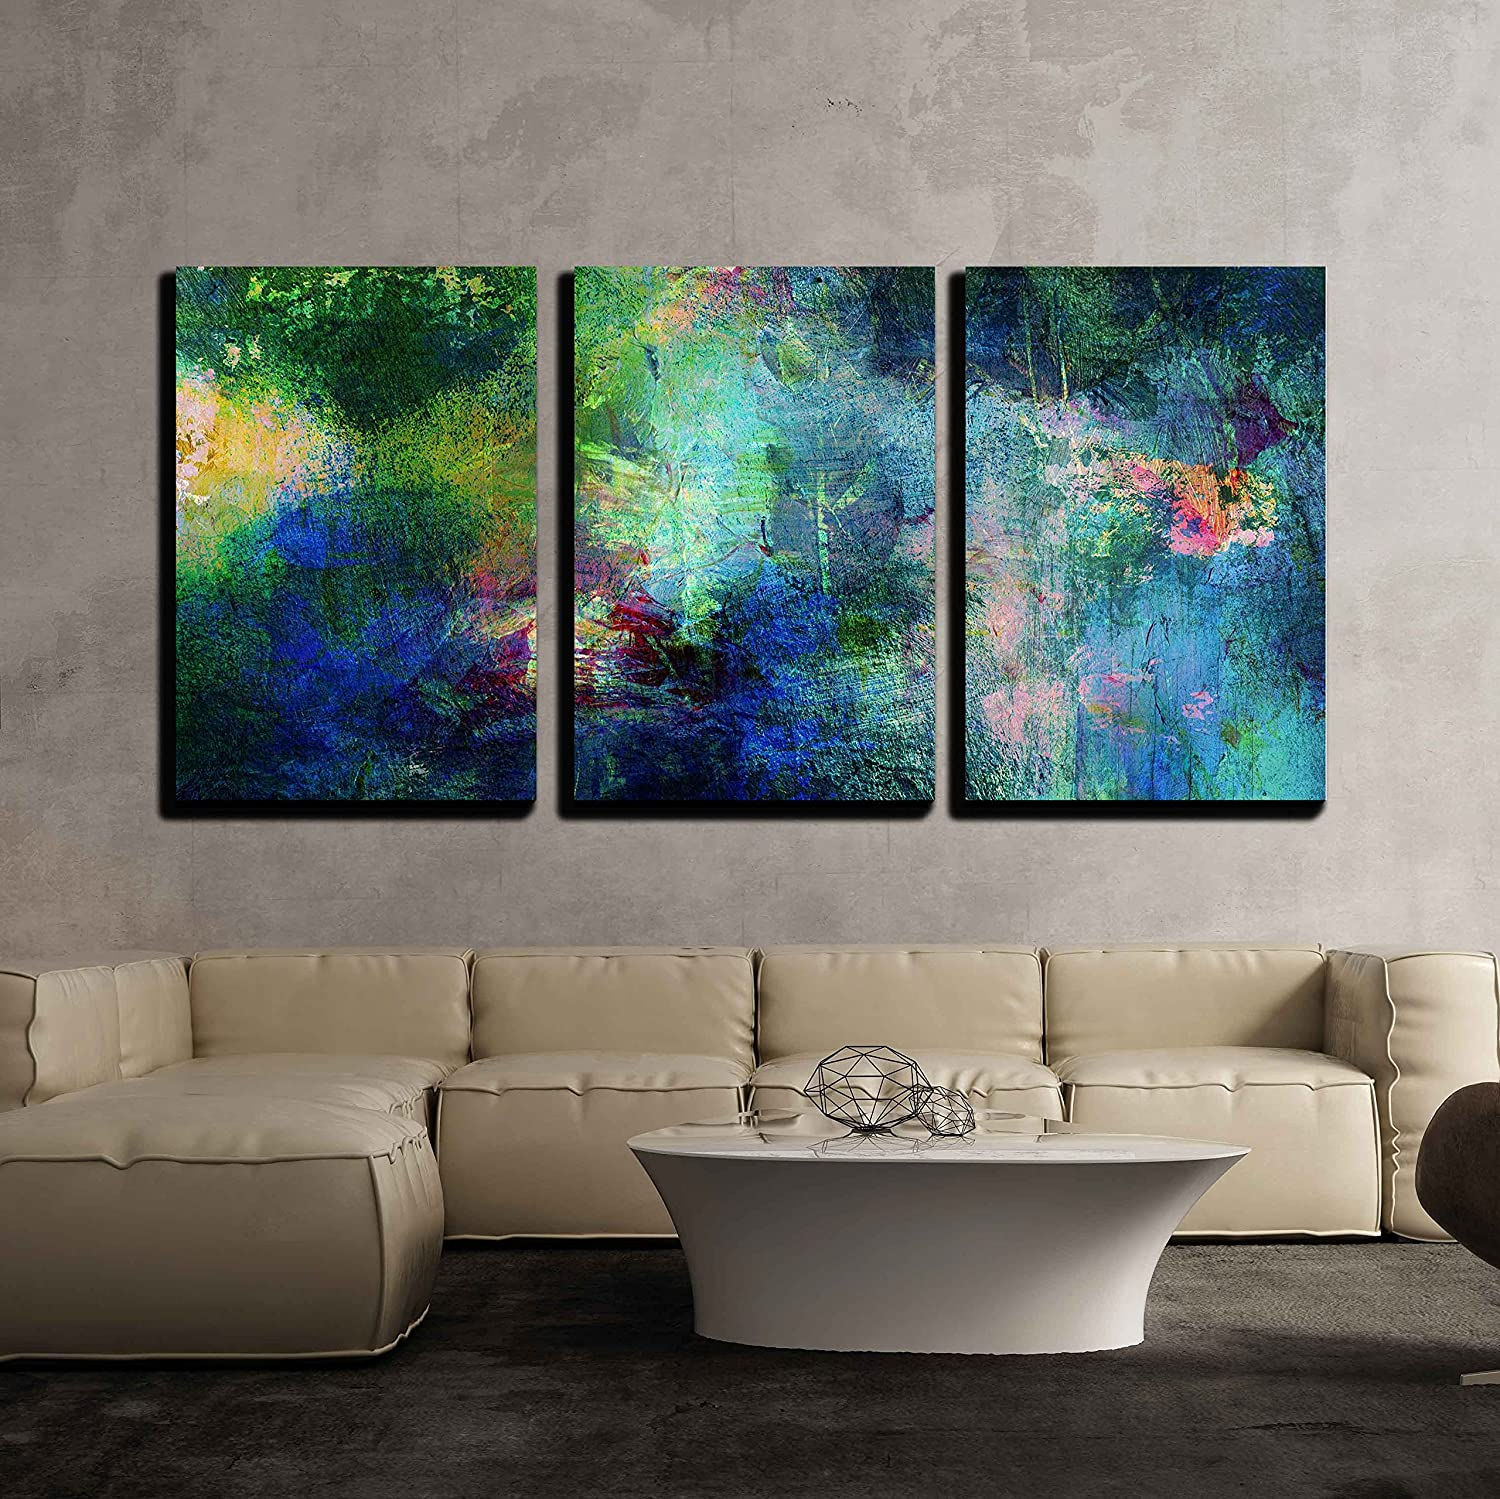 Wall26 3 piece canvas wall art soothing and vibrant blue and green splotches of paint modern home decor stretched and framed ready to hang